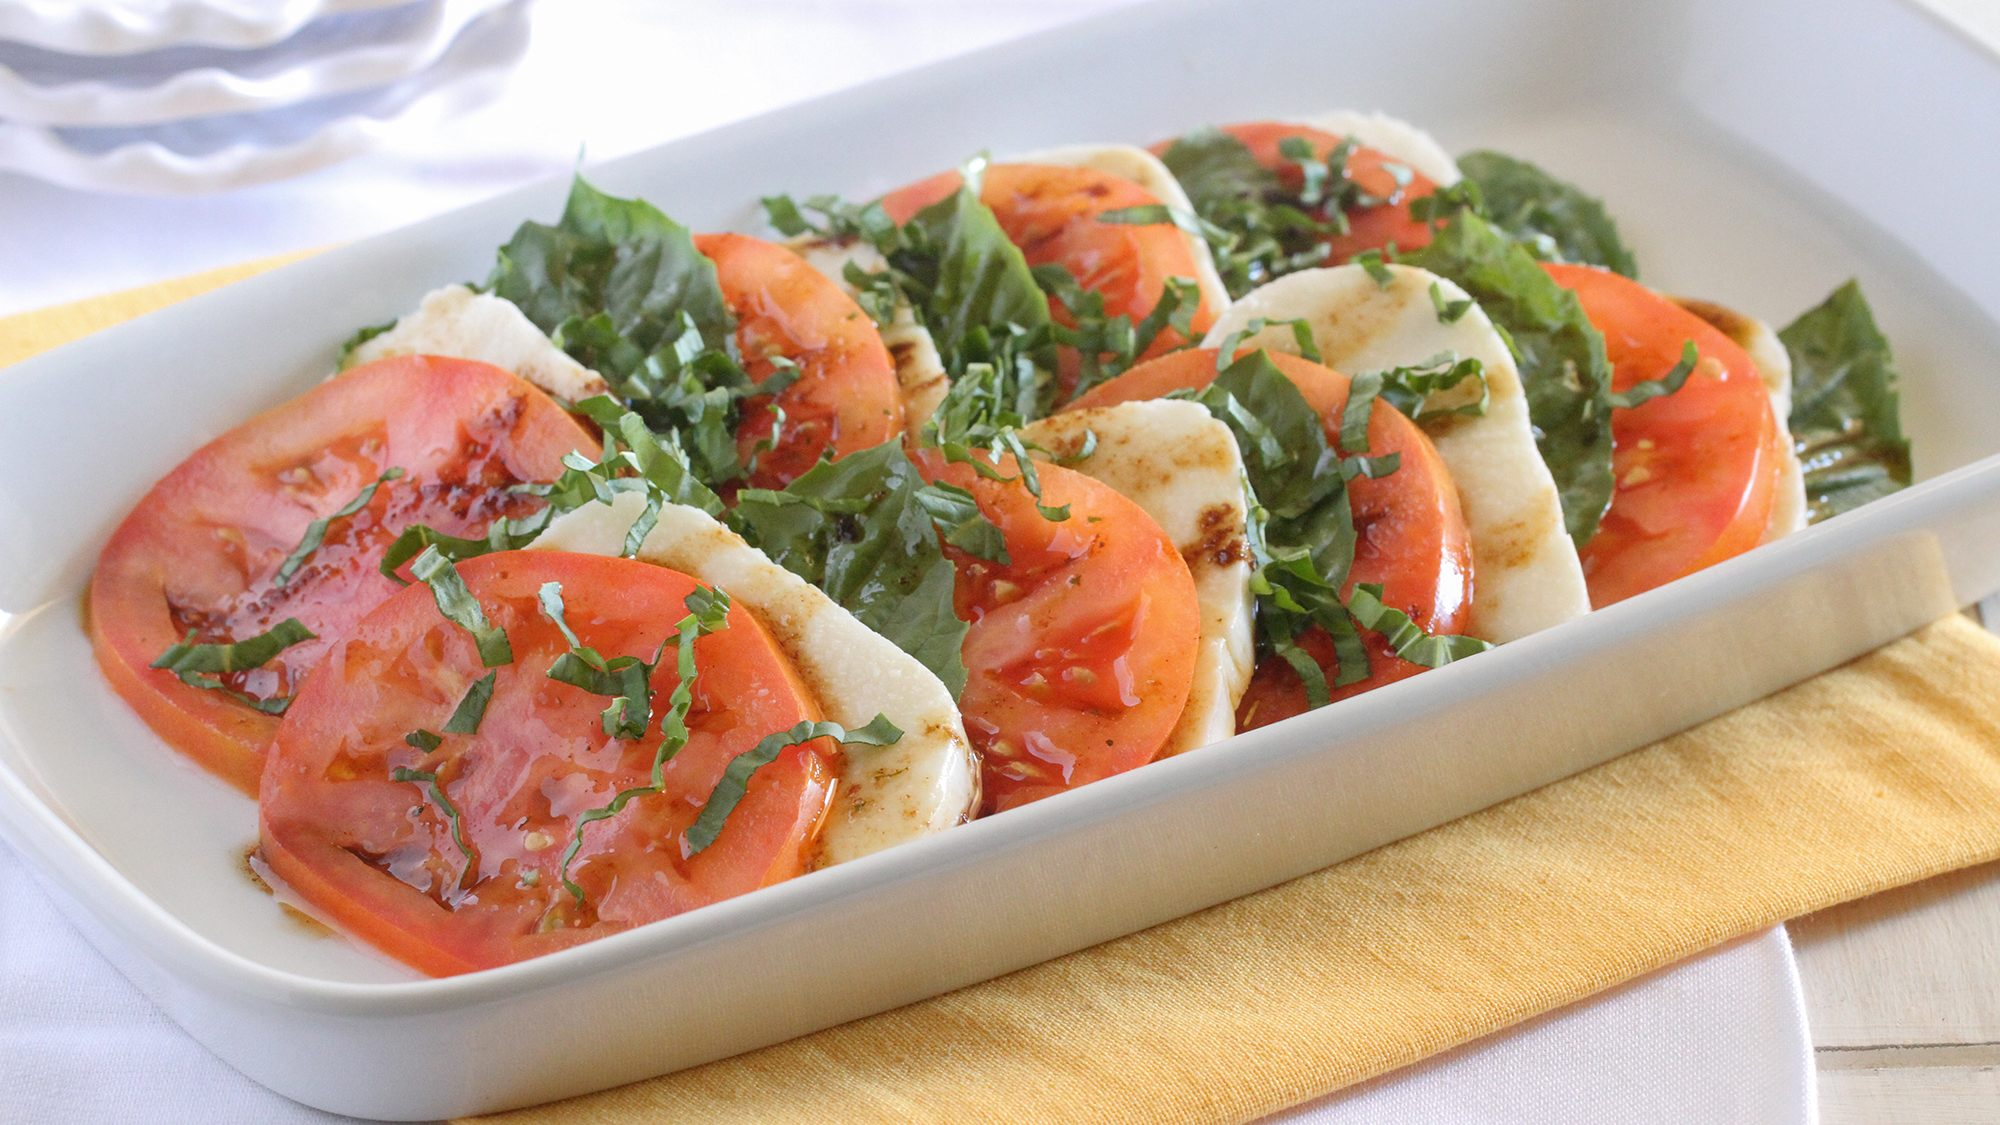 Lawry's Marinated Mozzarella & Tomatoes